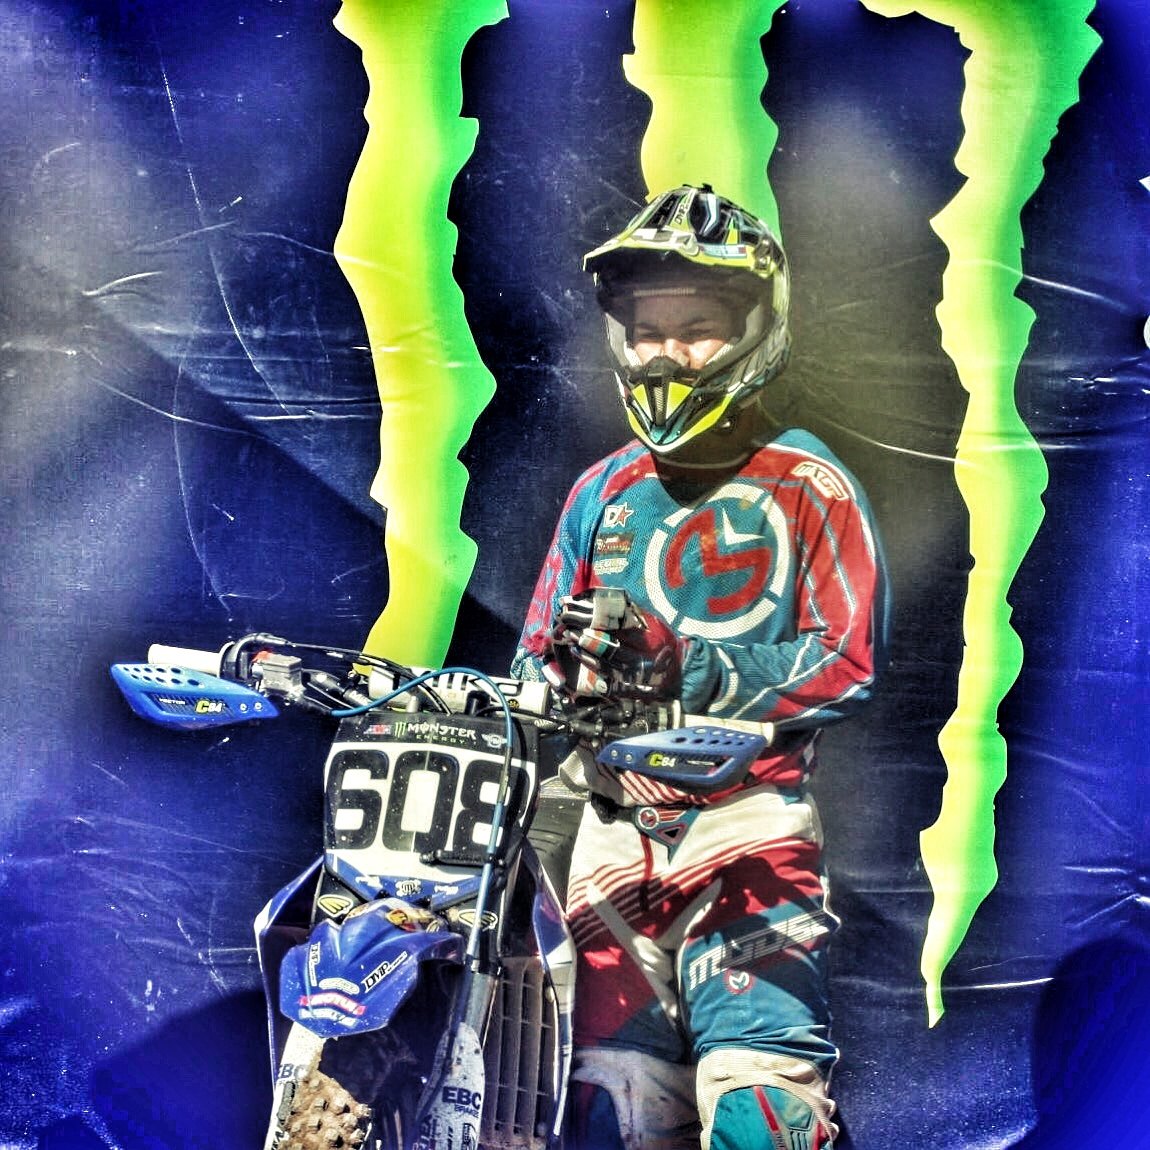 David Pulley Jr Monster Energy MXGP